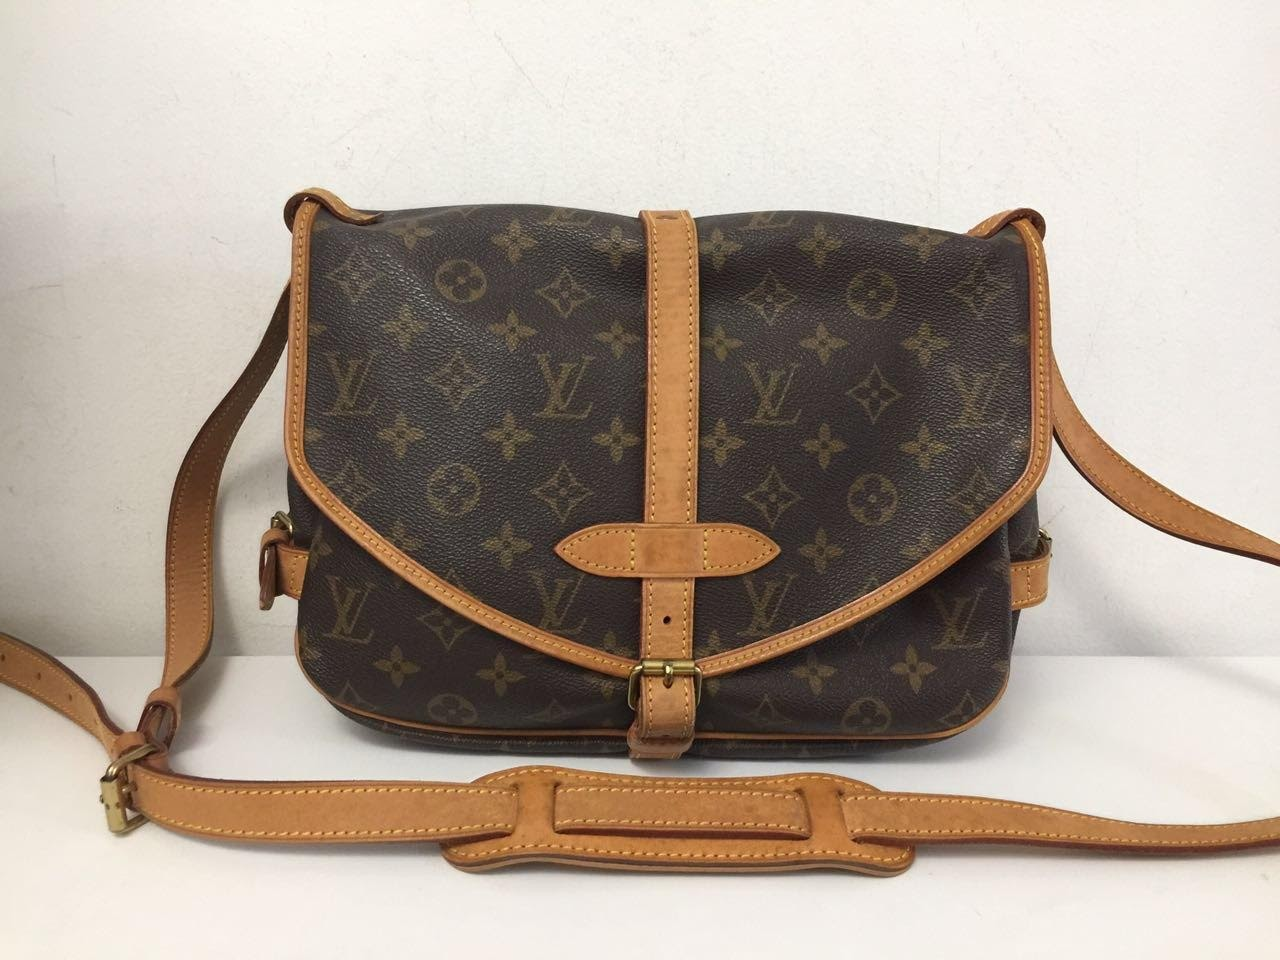 Bolsa modelo Sammur PM- Louis Vuitton